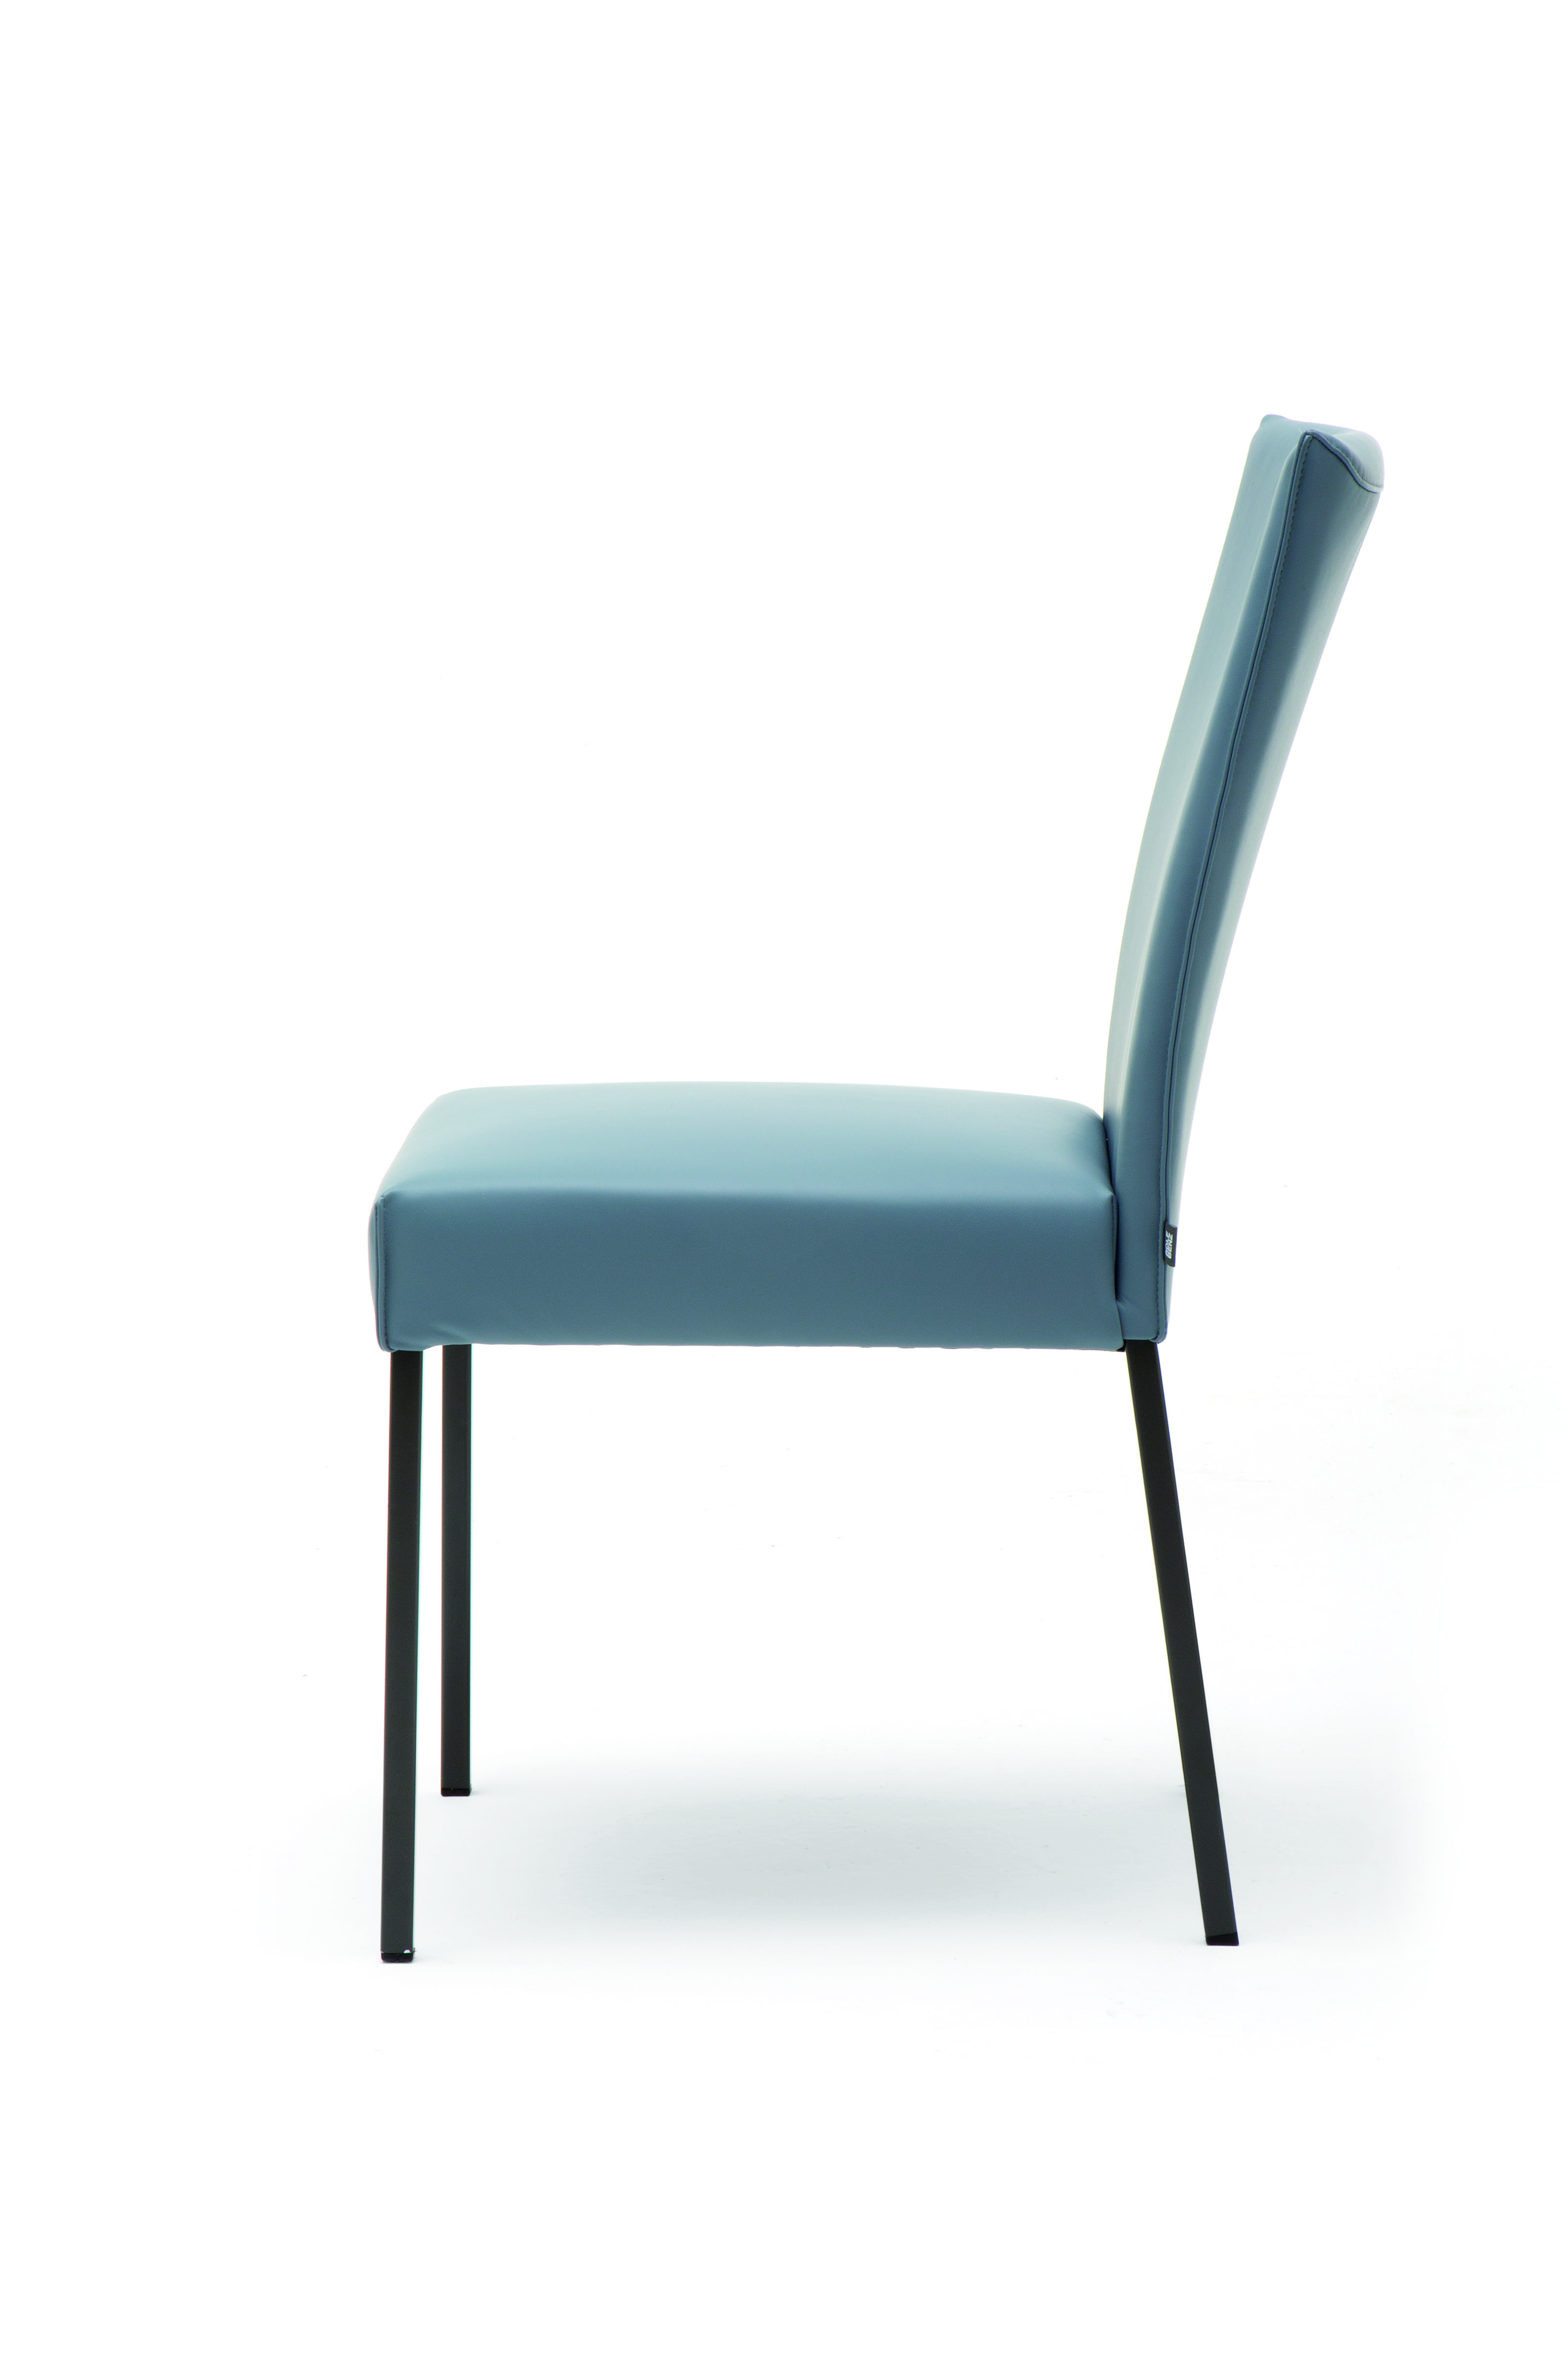 Rolf Benz 652 dining chair-no arms. Rolf Benz Studio, Boston, MA.